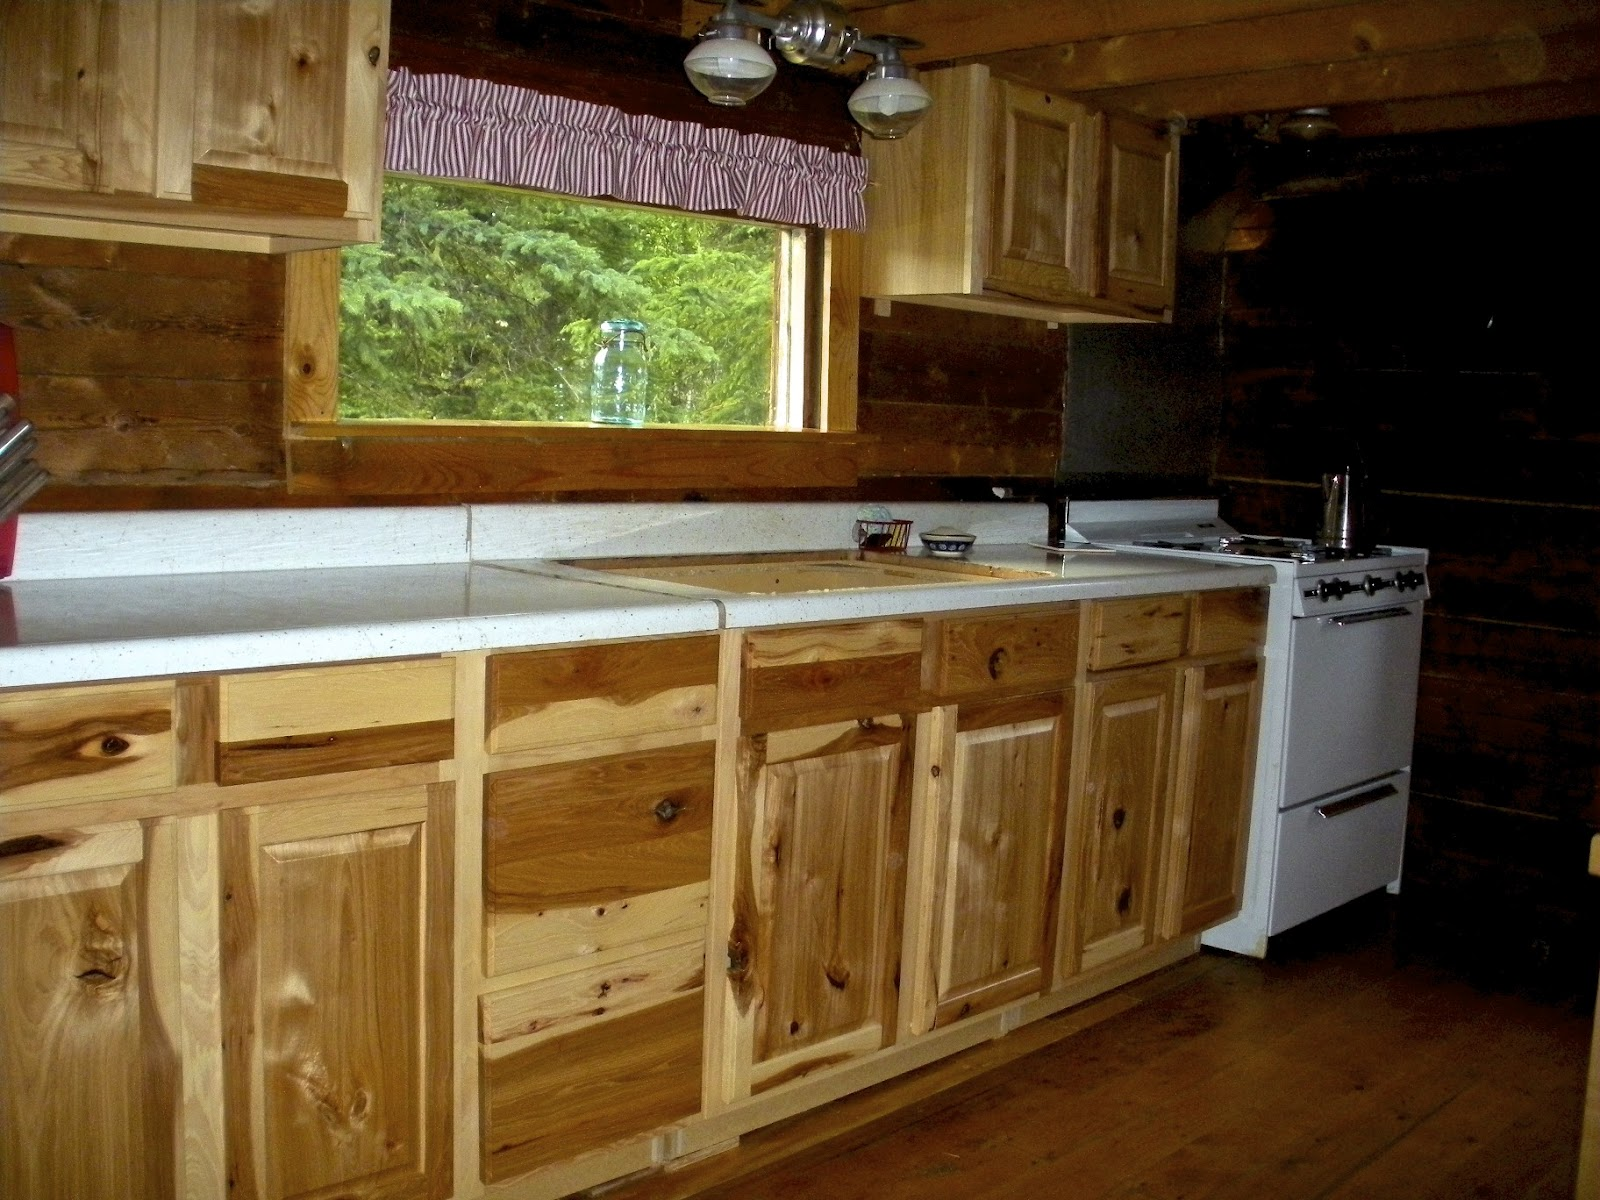 Lowes kitchen cabinets recommendation of the day home for Best quality kitchen cabinets